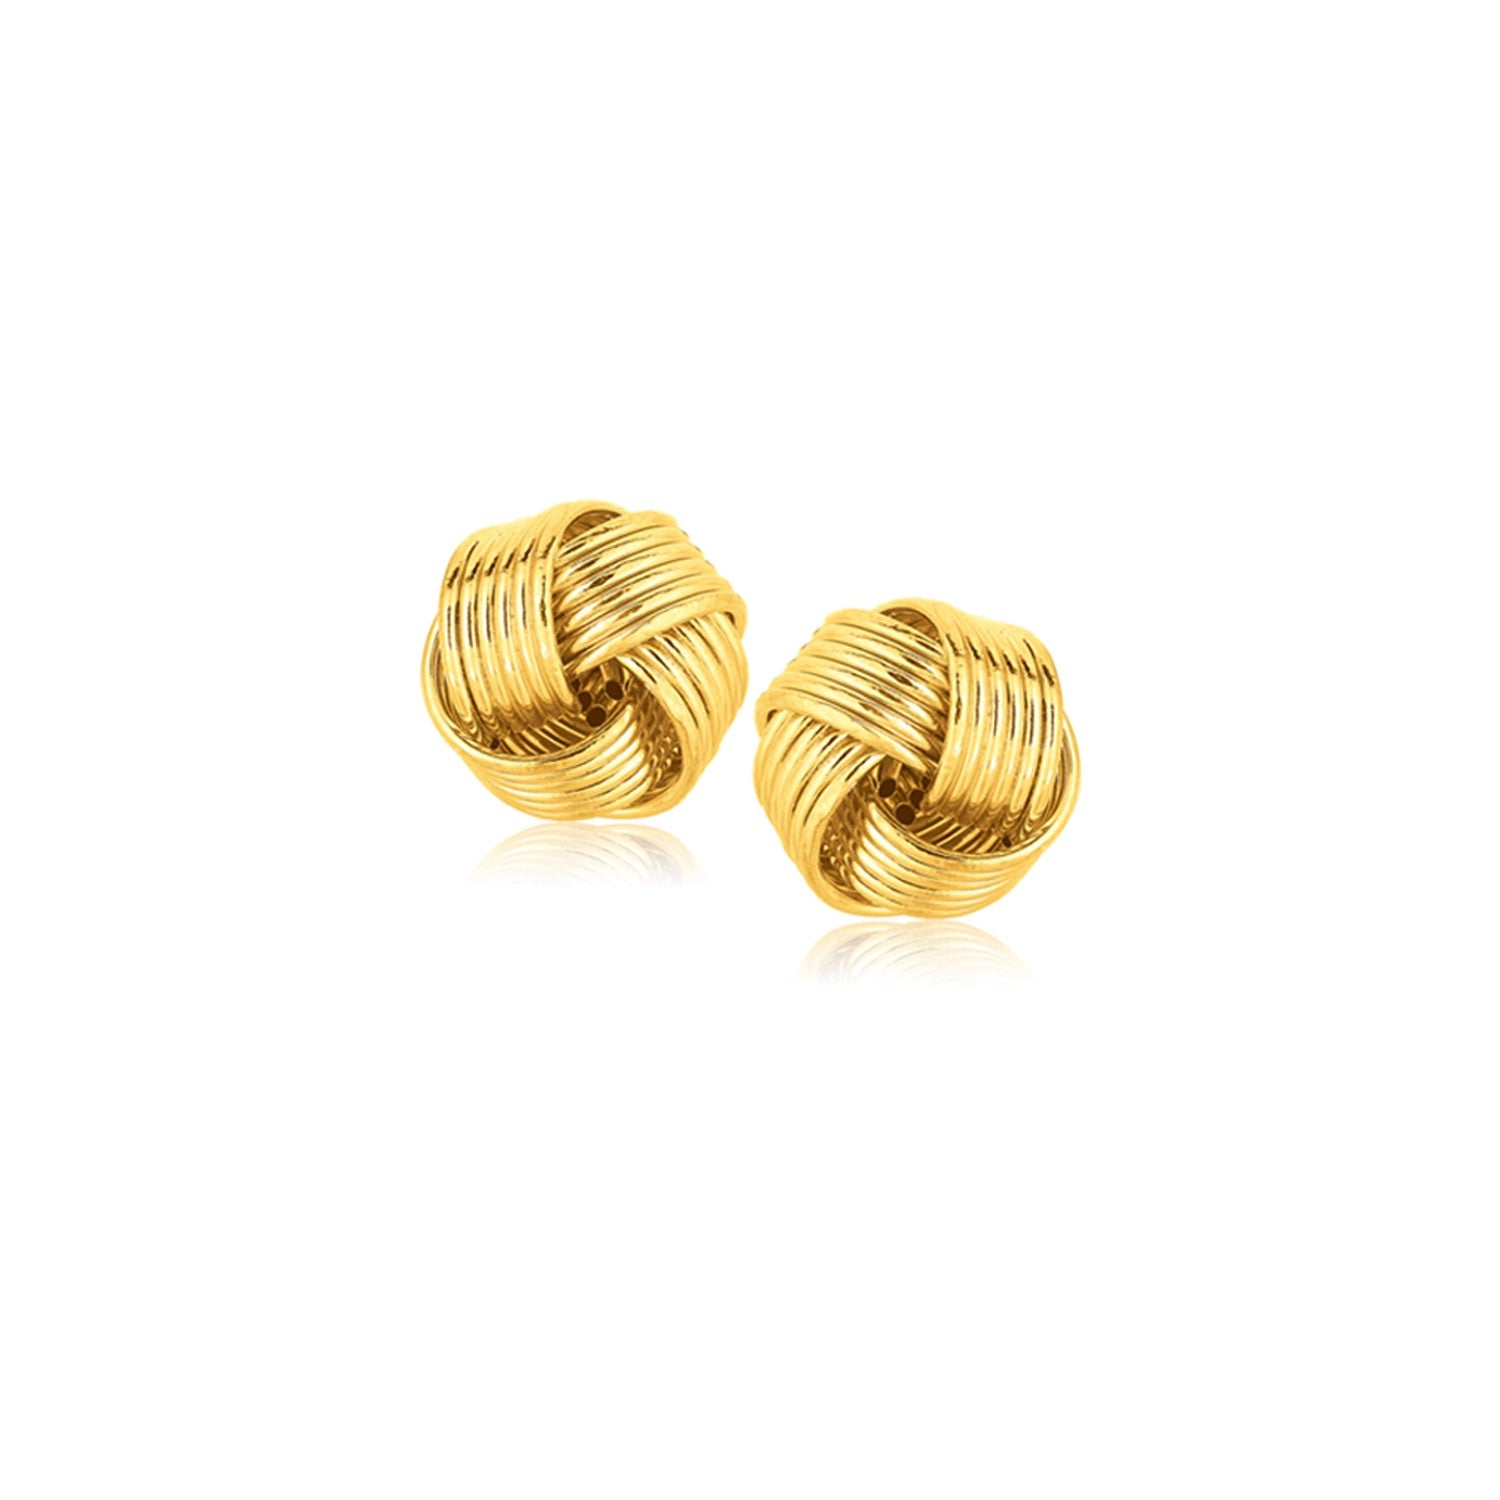 8a60d1d30 14k Yellow Gold Interlaced Love Knot Stud Earrings - Unity BAMN